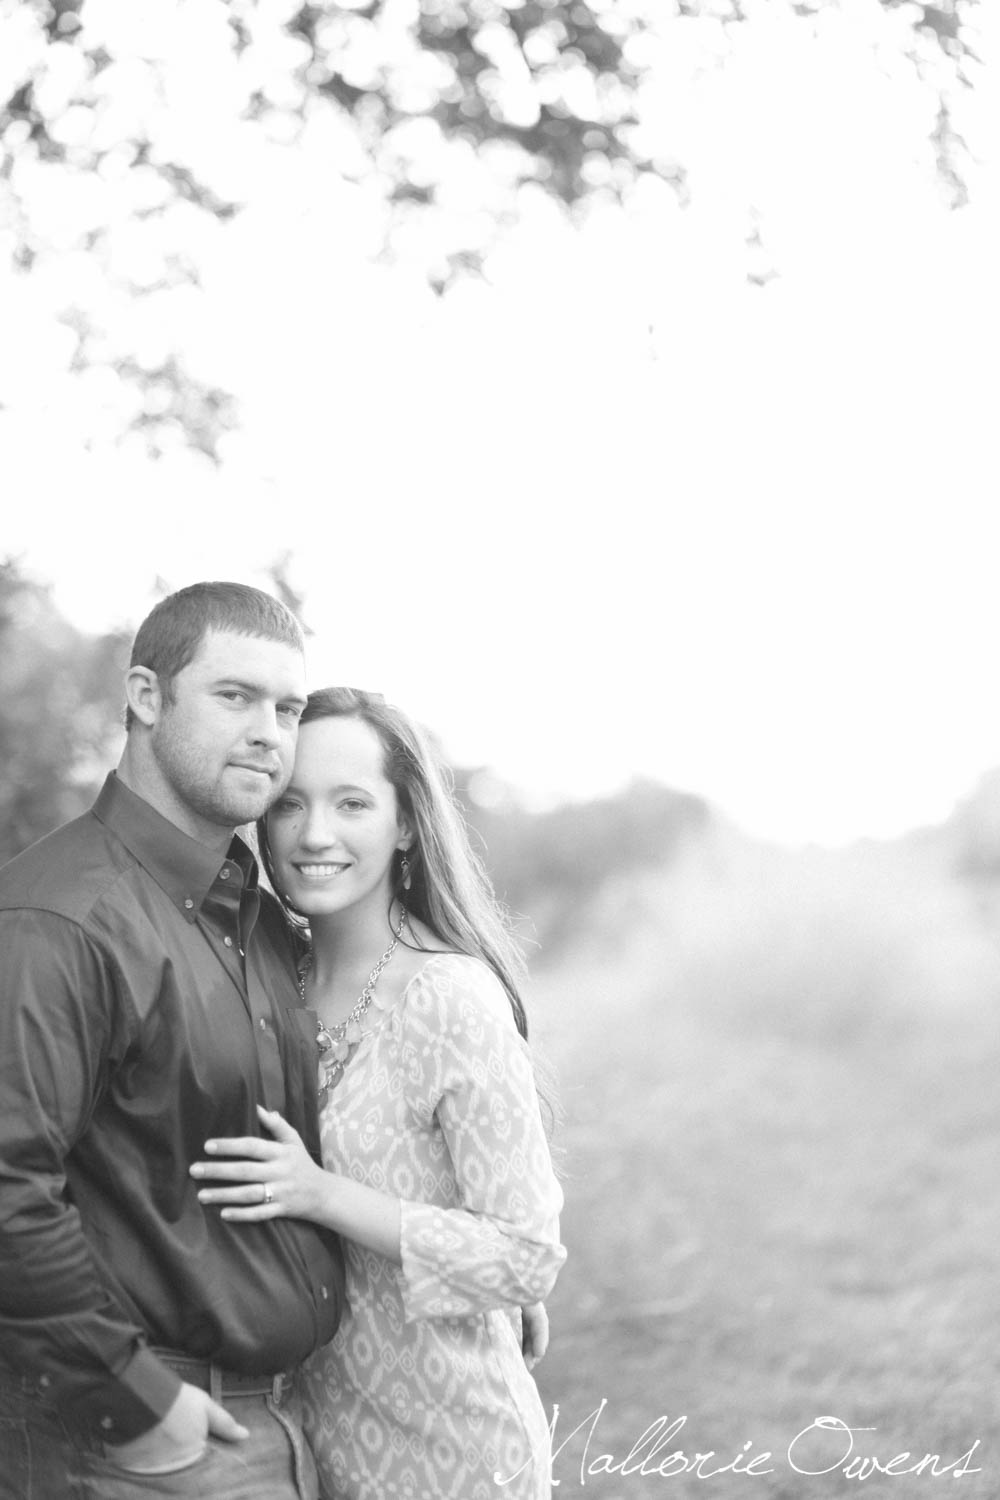 Sunset Engagement Photography | MALLORIE OWENS